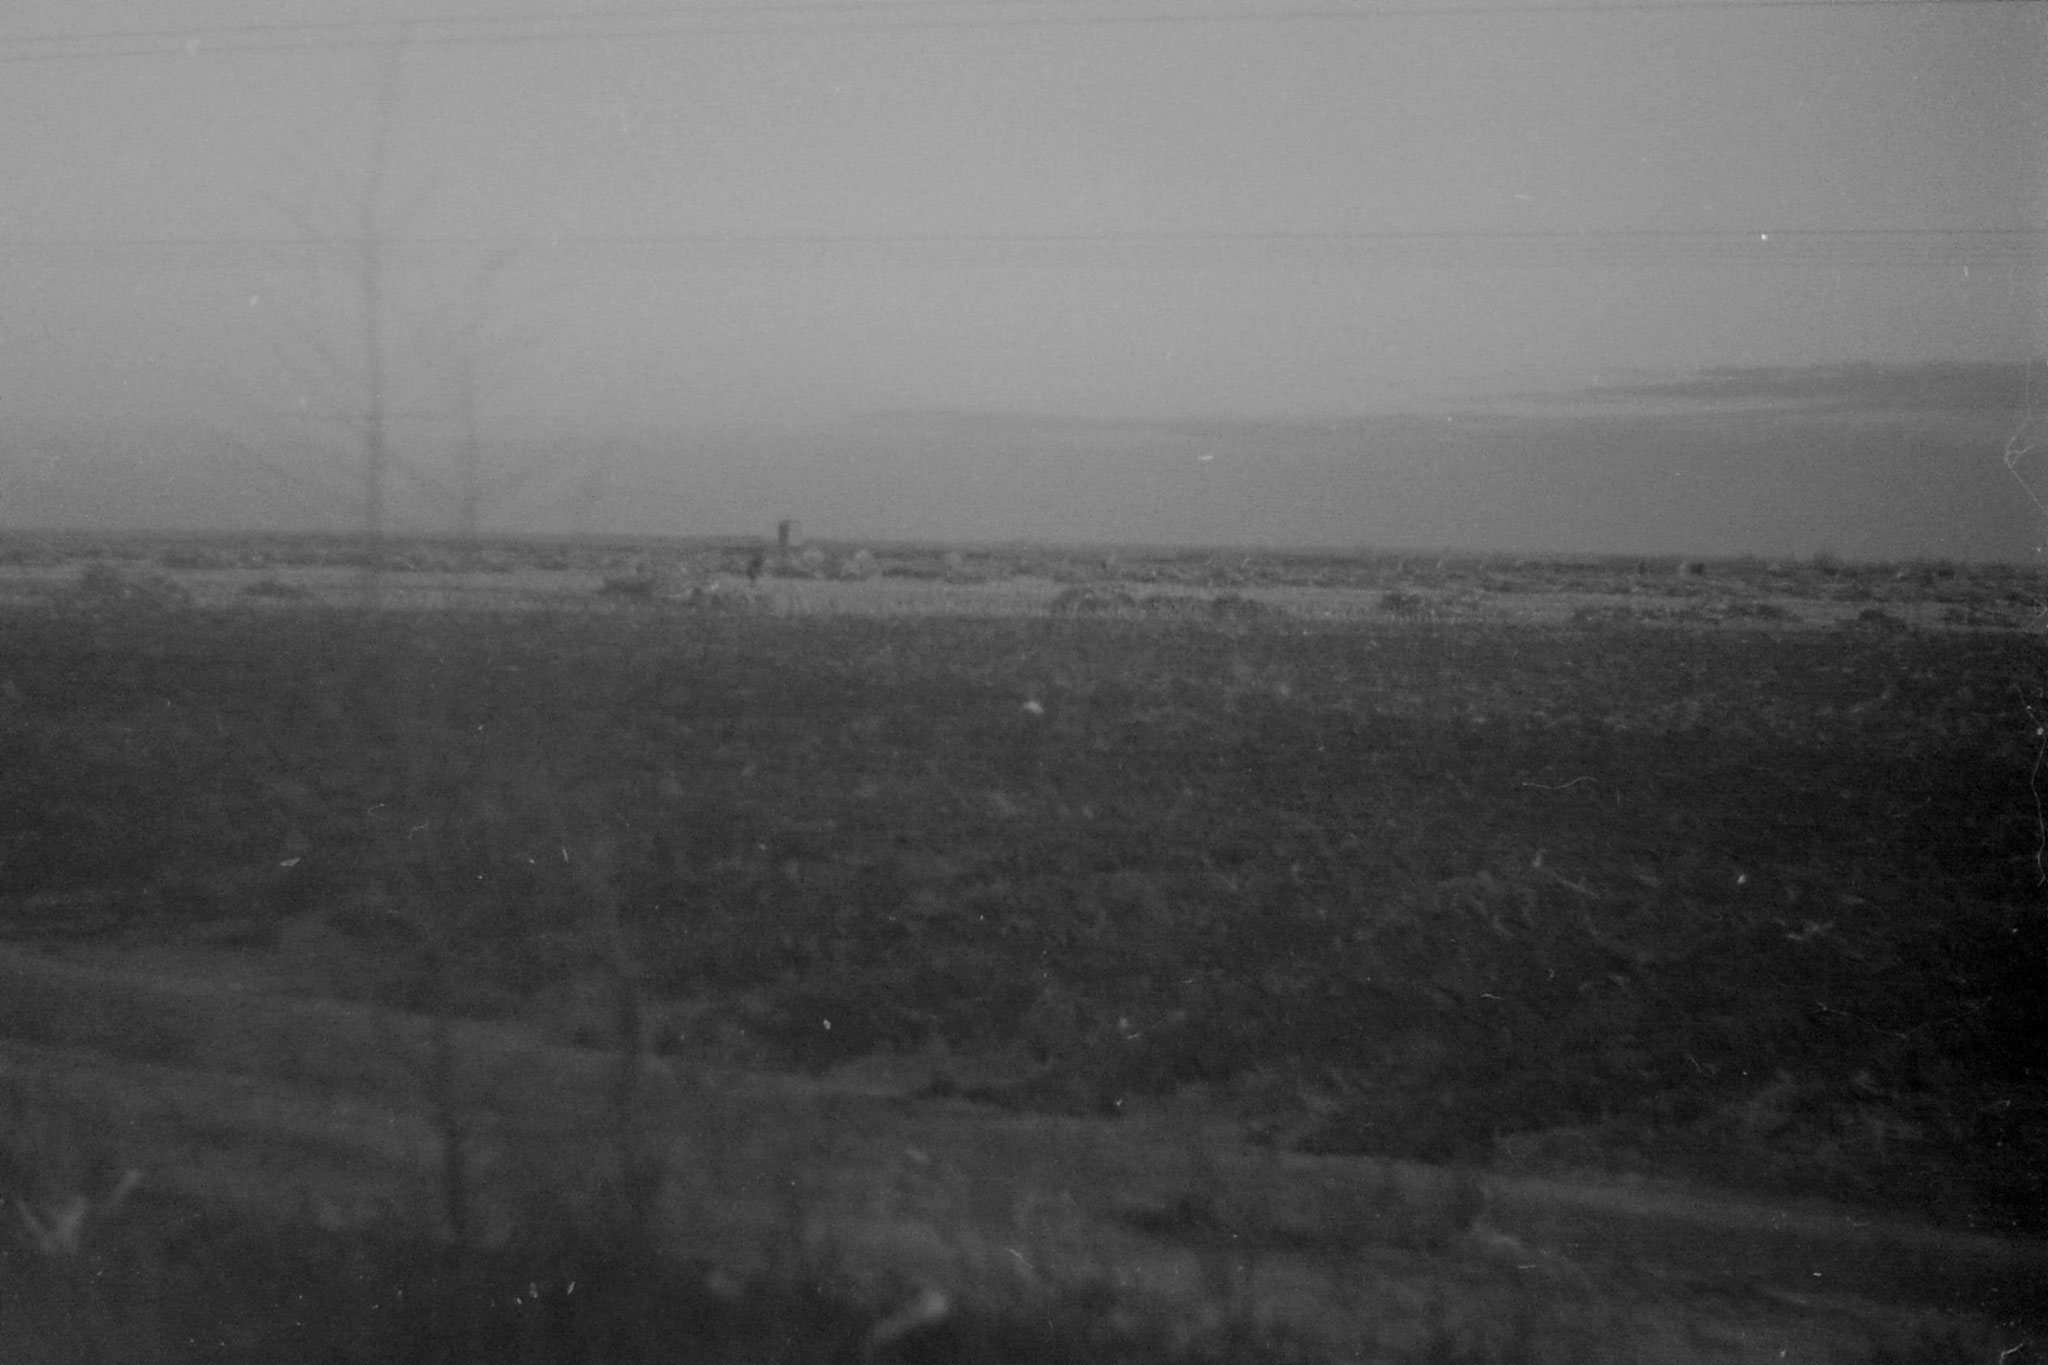 27/10/1988: 24: fields after Harbin